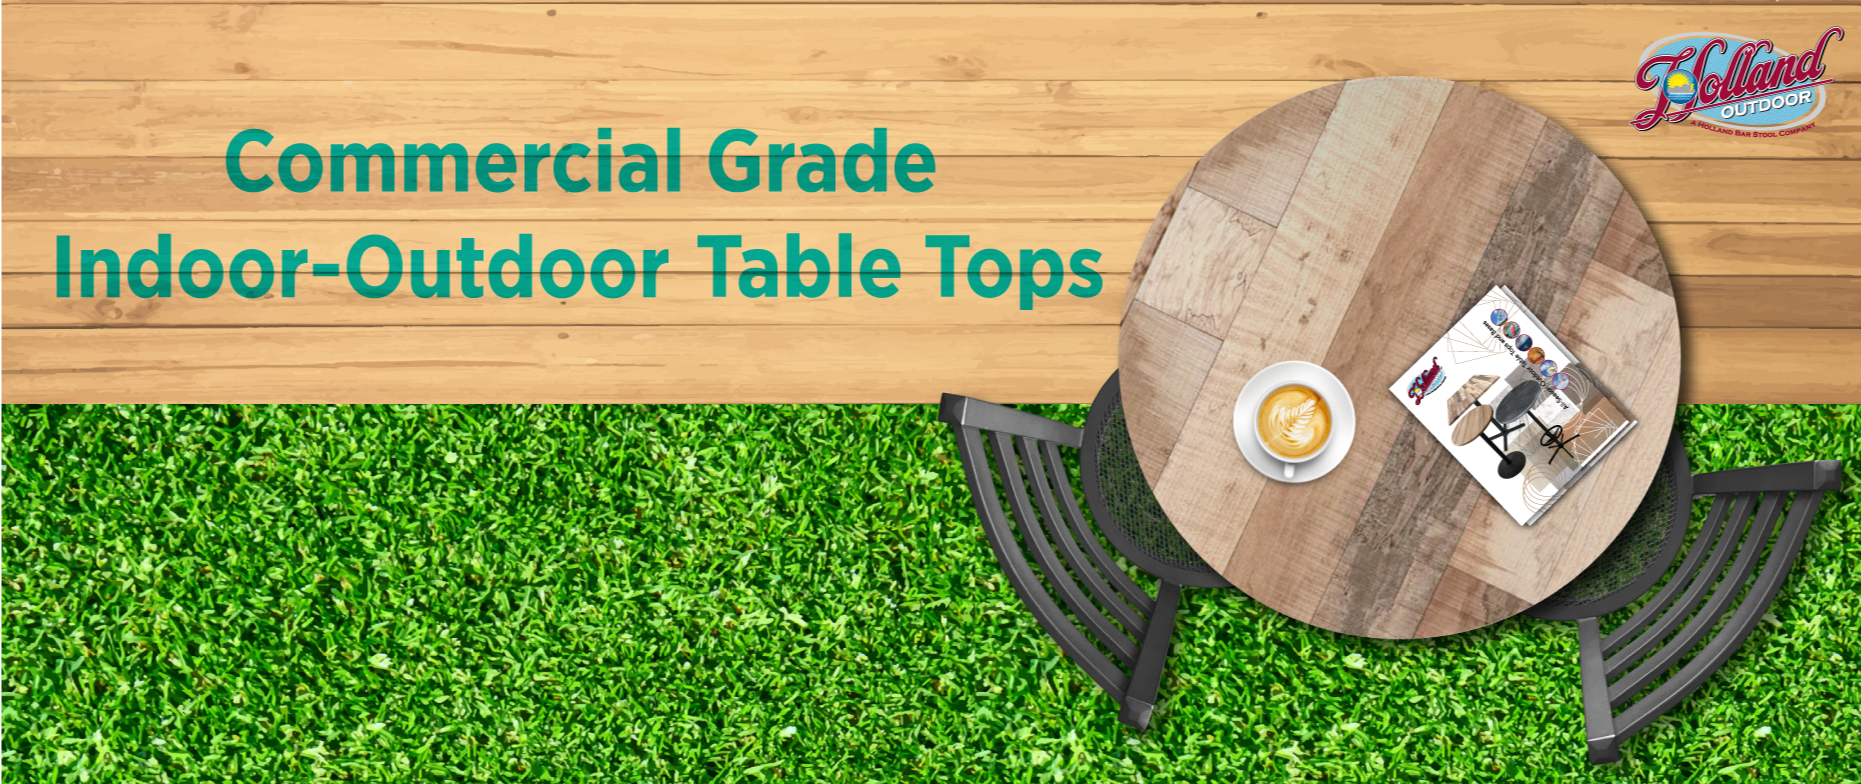 Commercial Indoor-Outdoor Table Tops for Restaurants and the Home